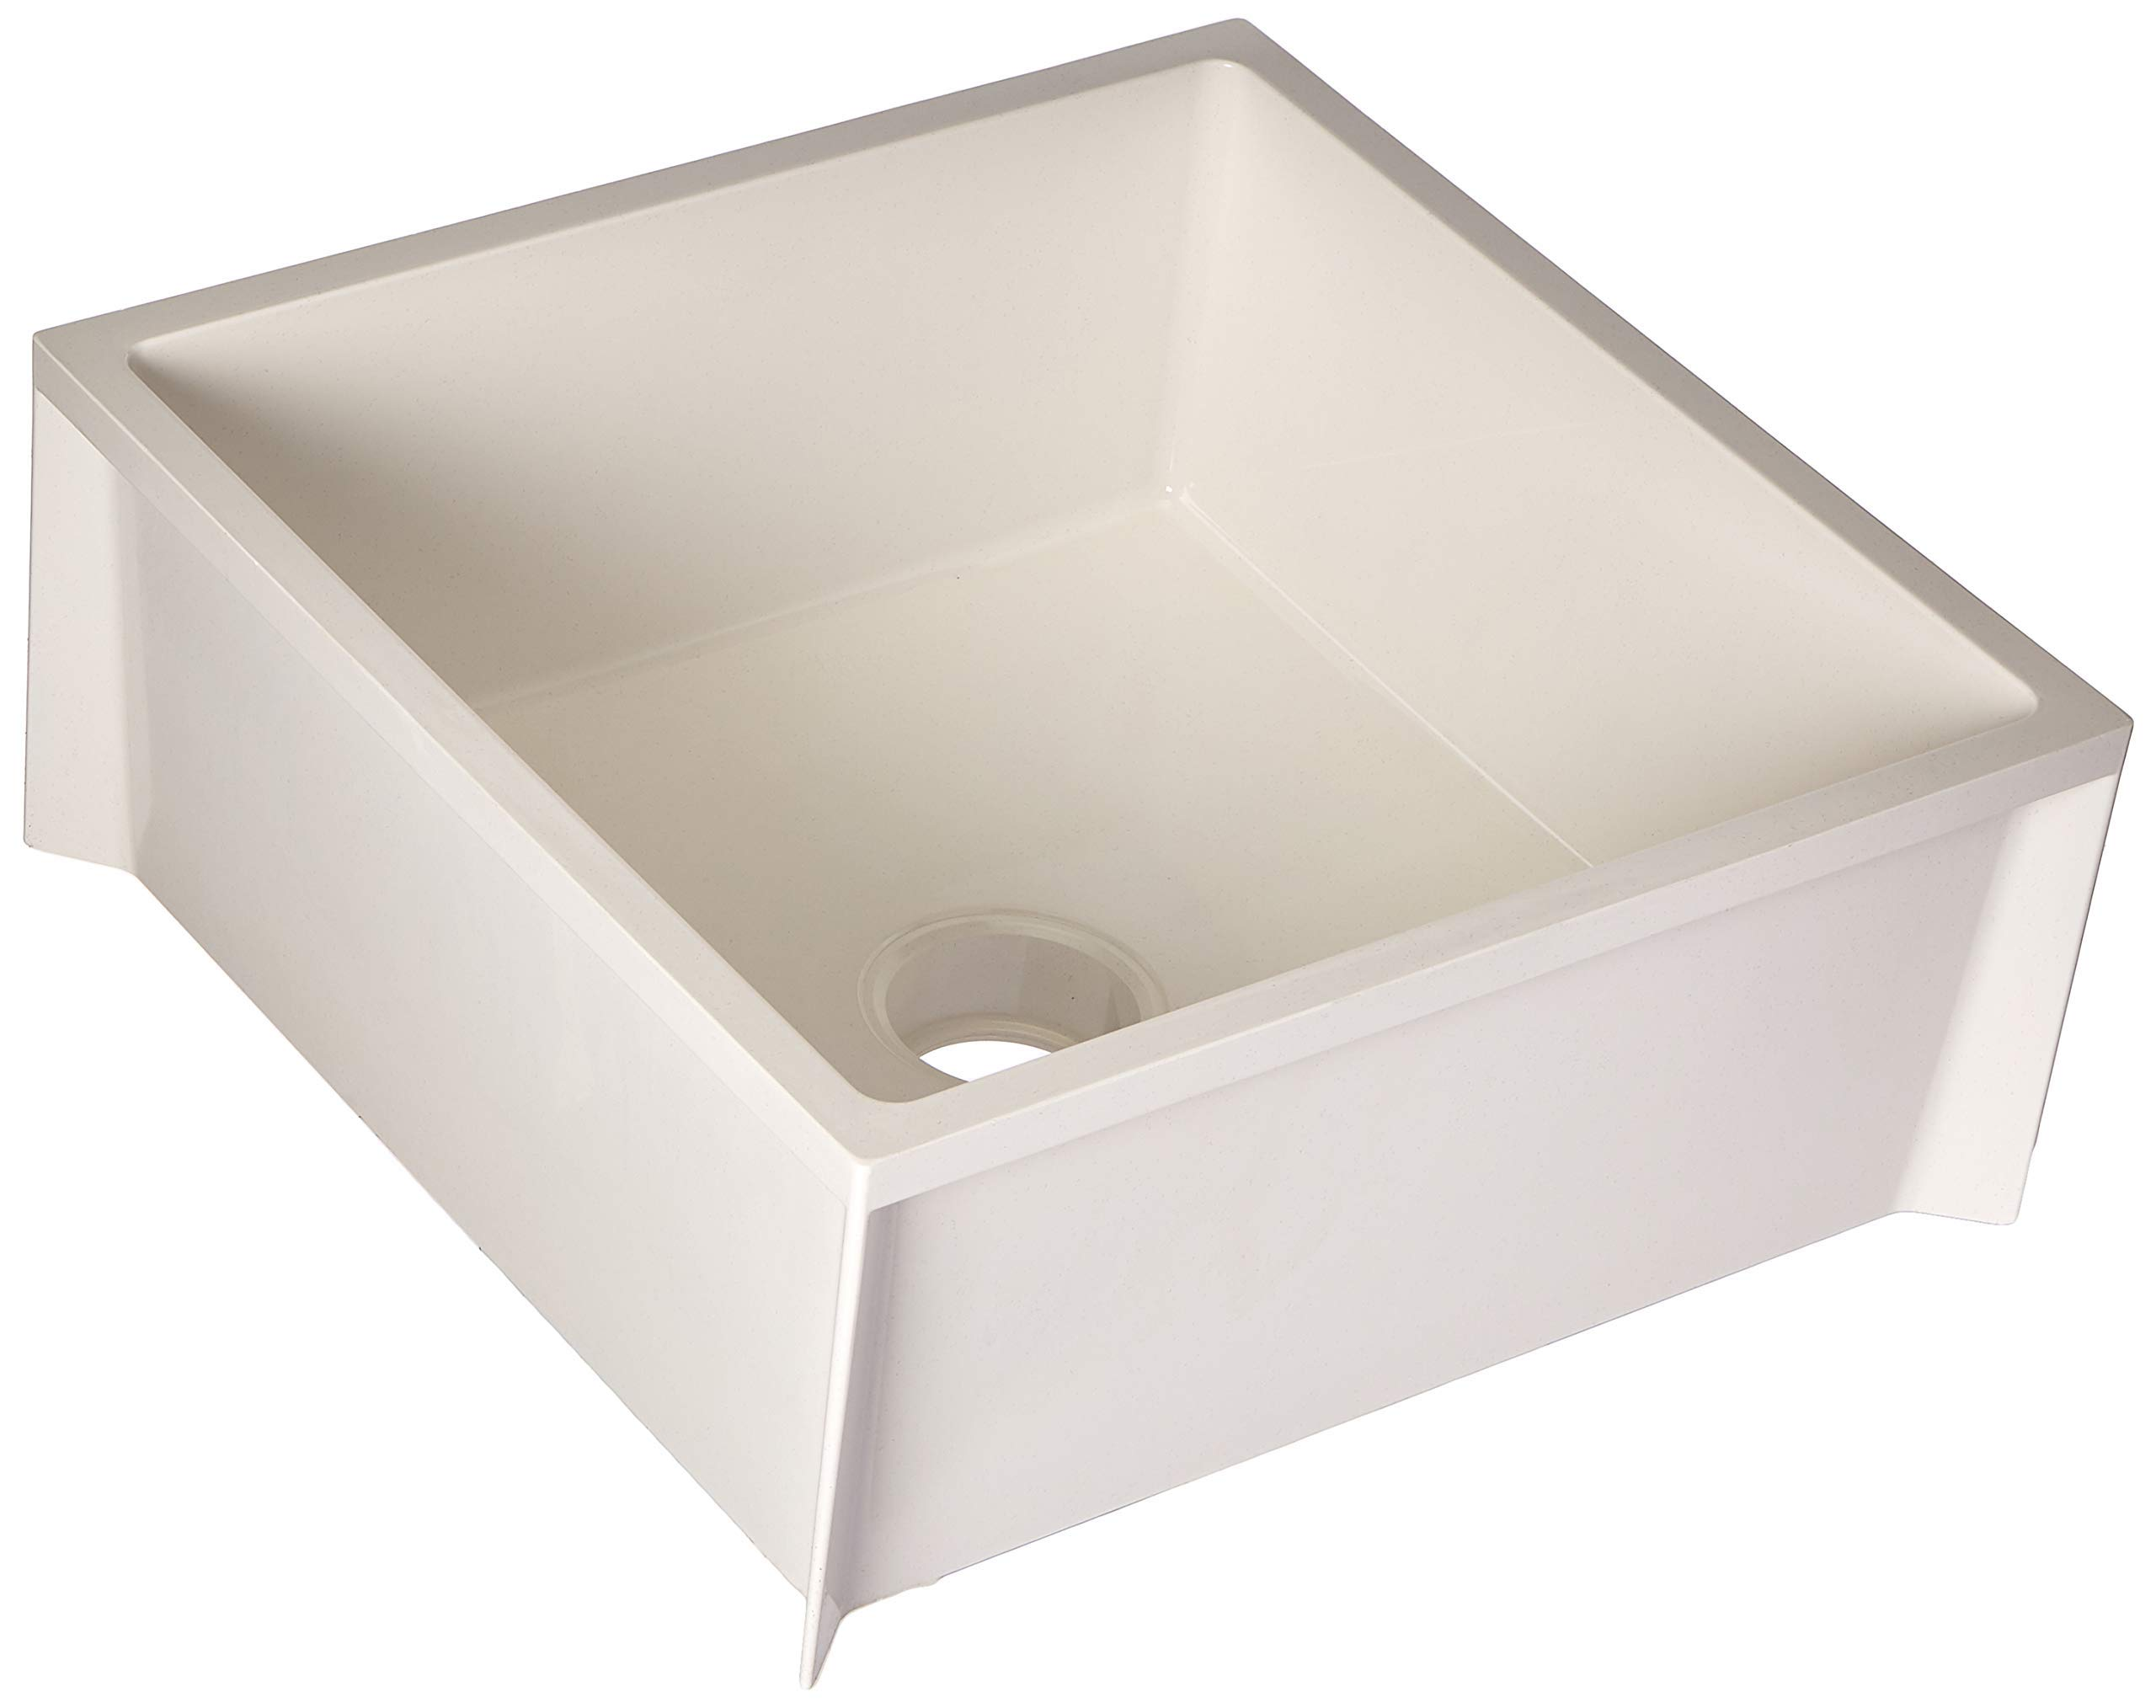 Mustee 63M Durastone Material Mop Sink, White (Renewed)